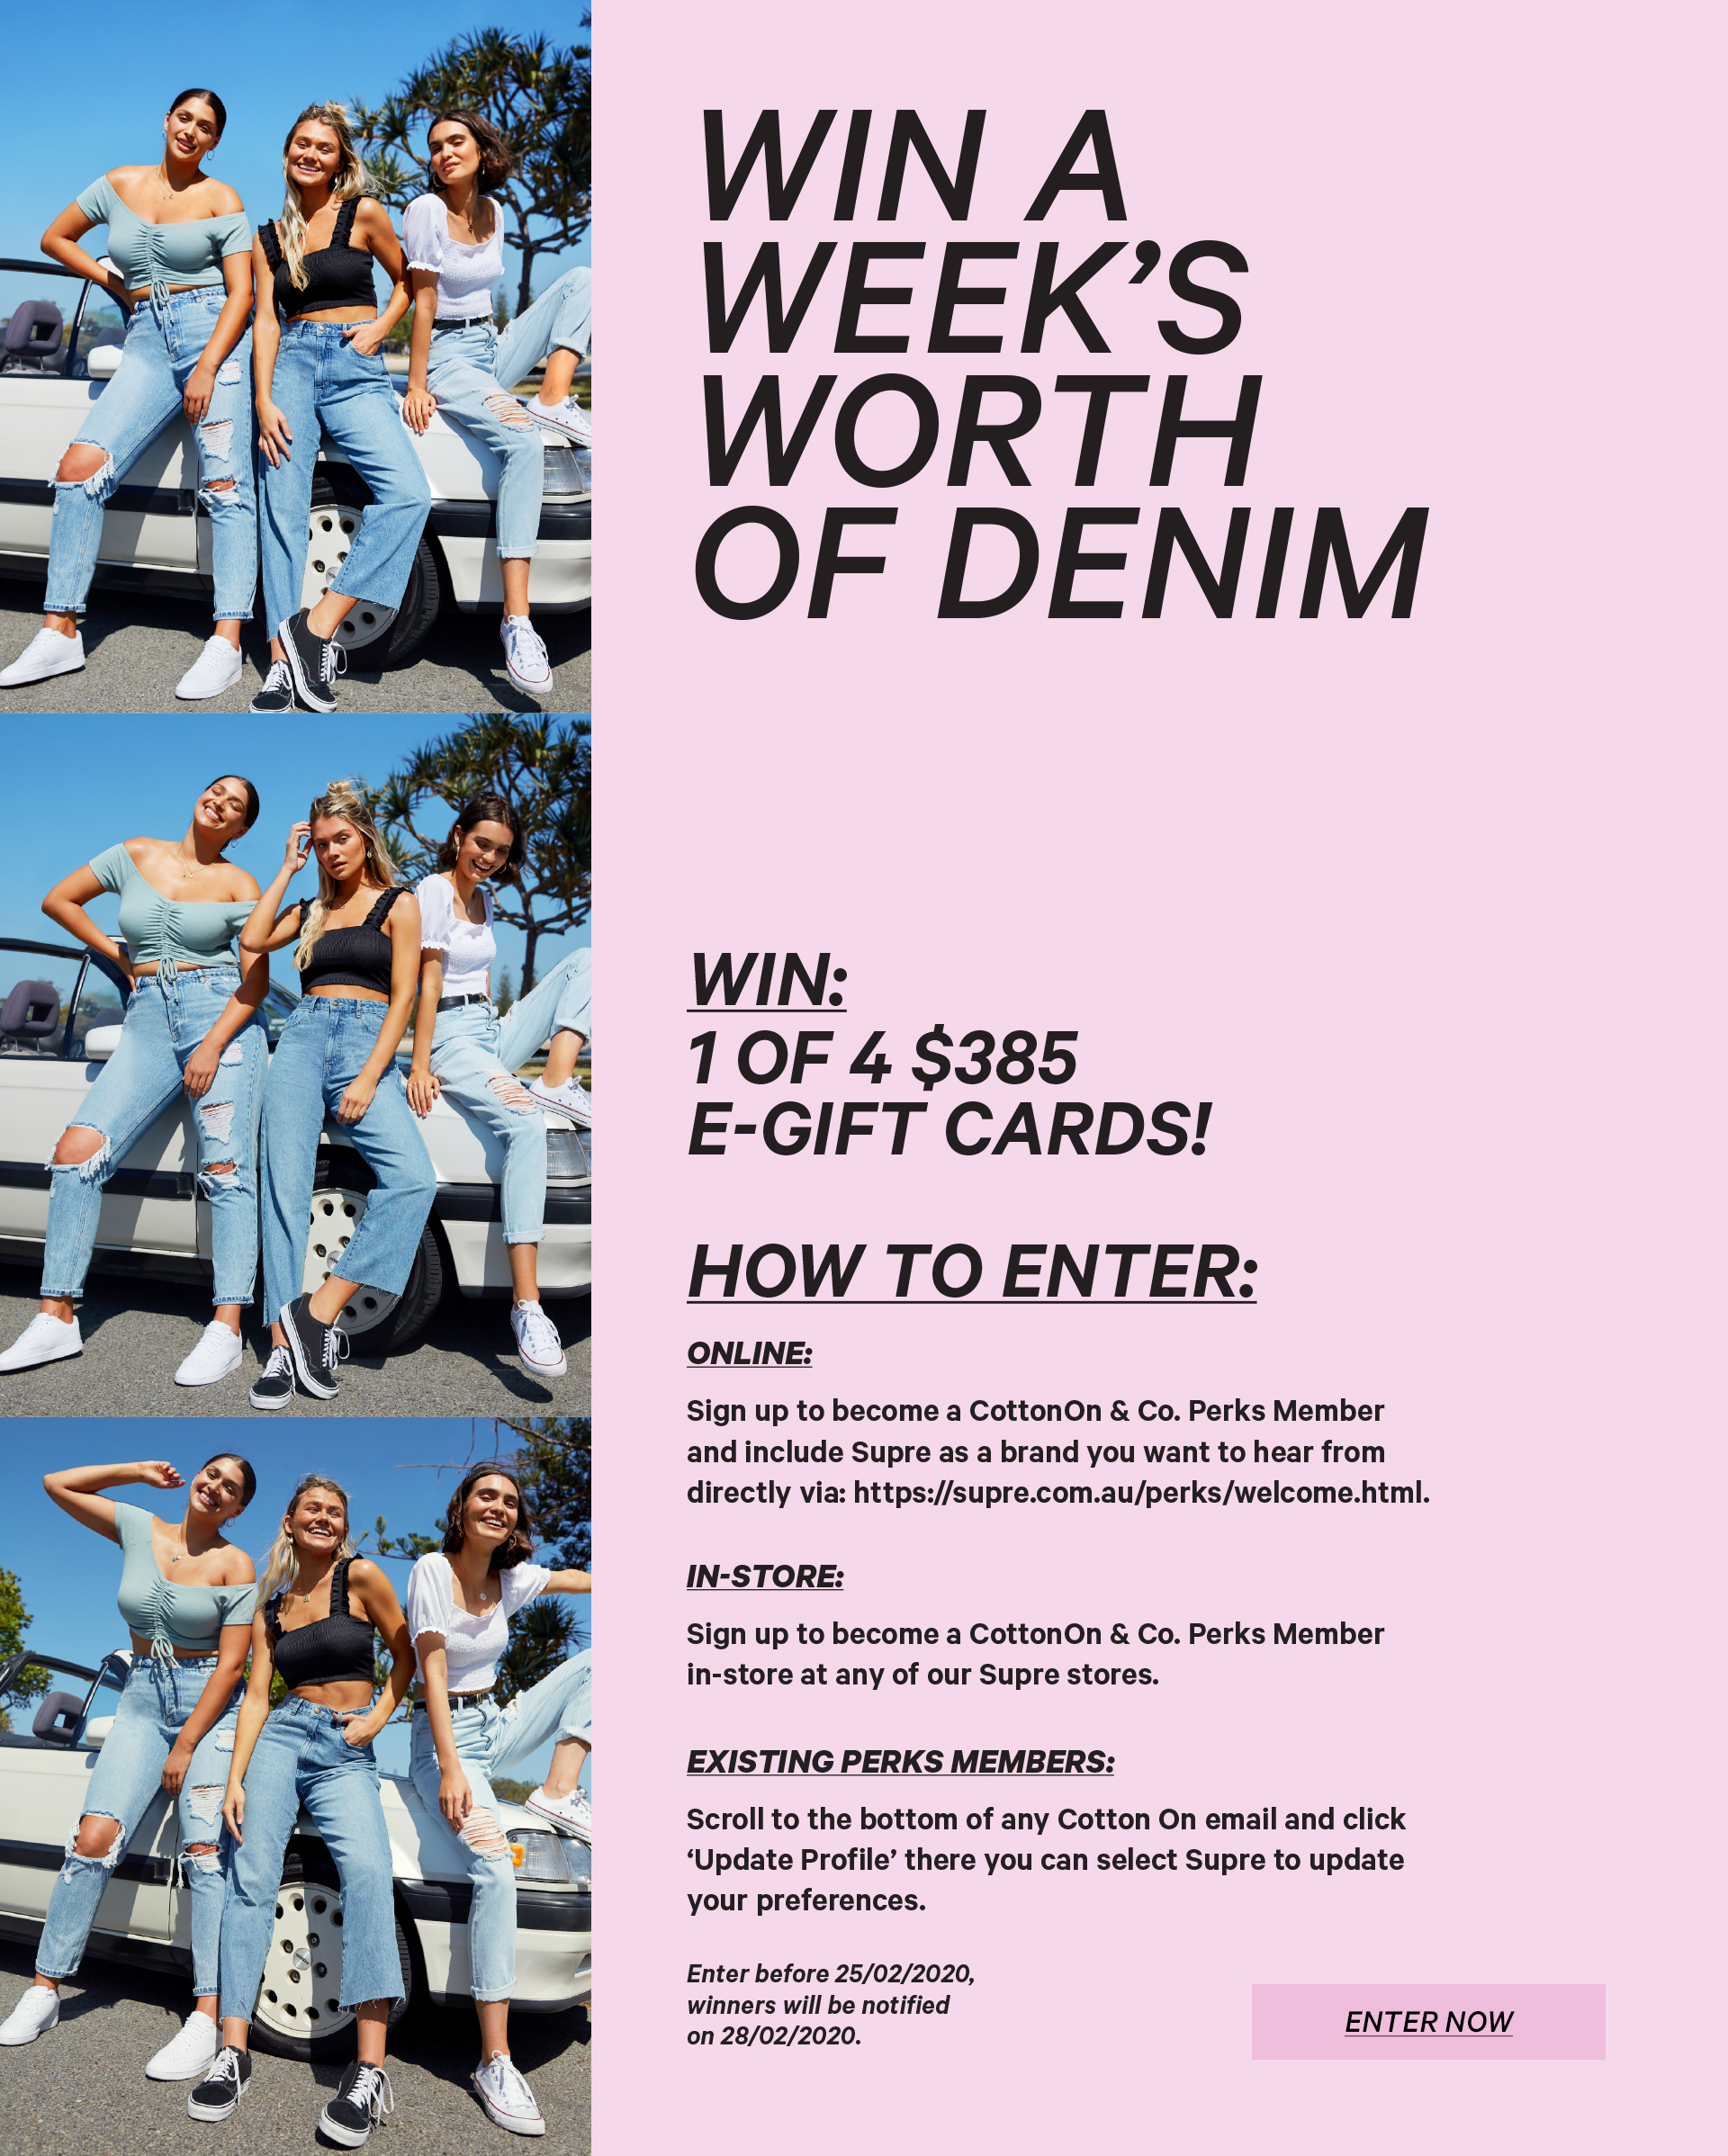 Sign Up Now For a Chance To Win